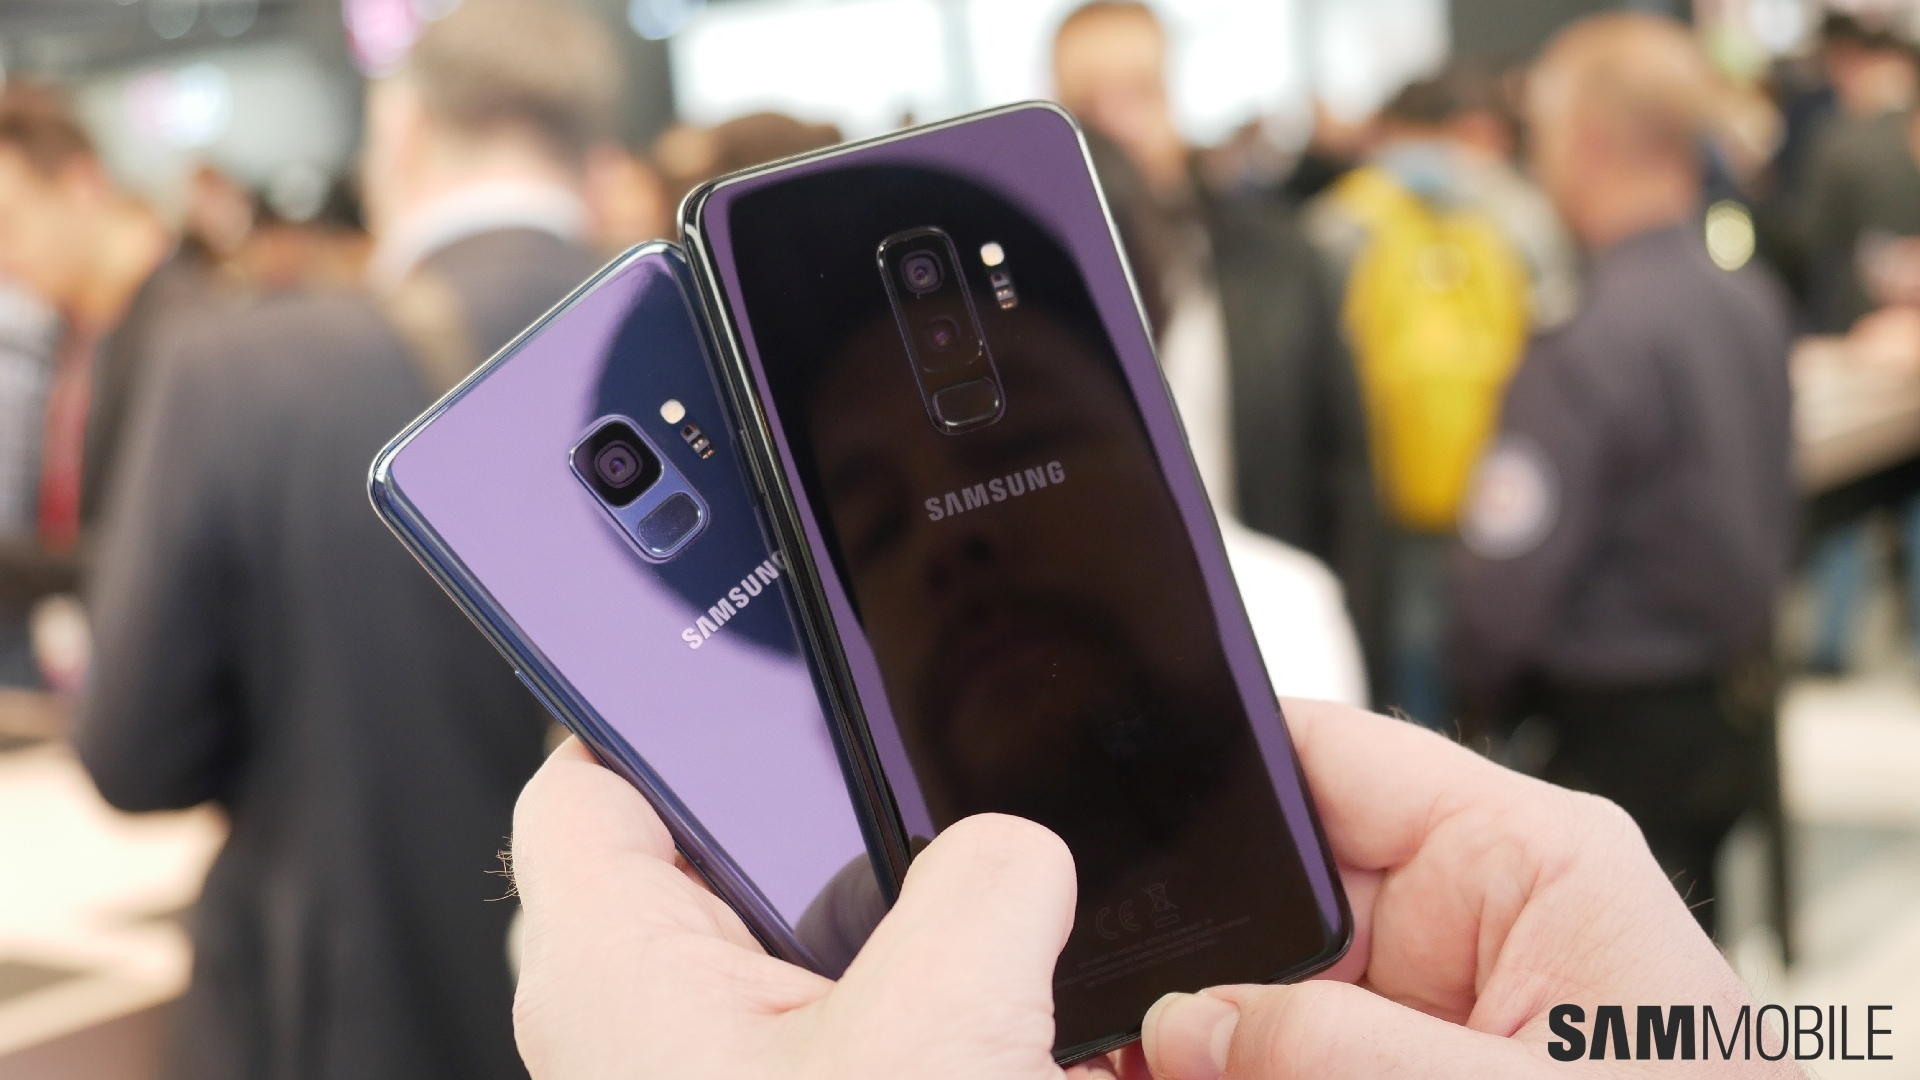 Galaxy S9 kernel sources have been released by Samsung